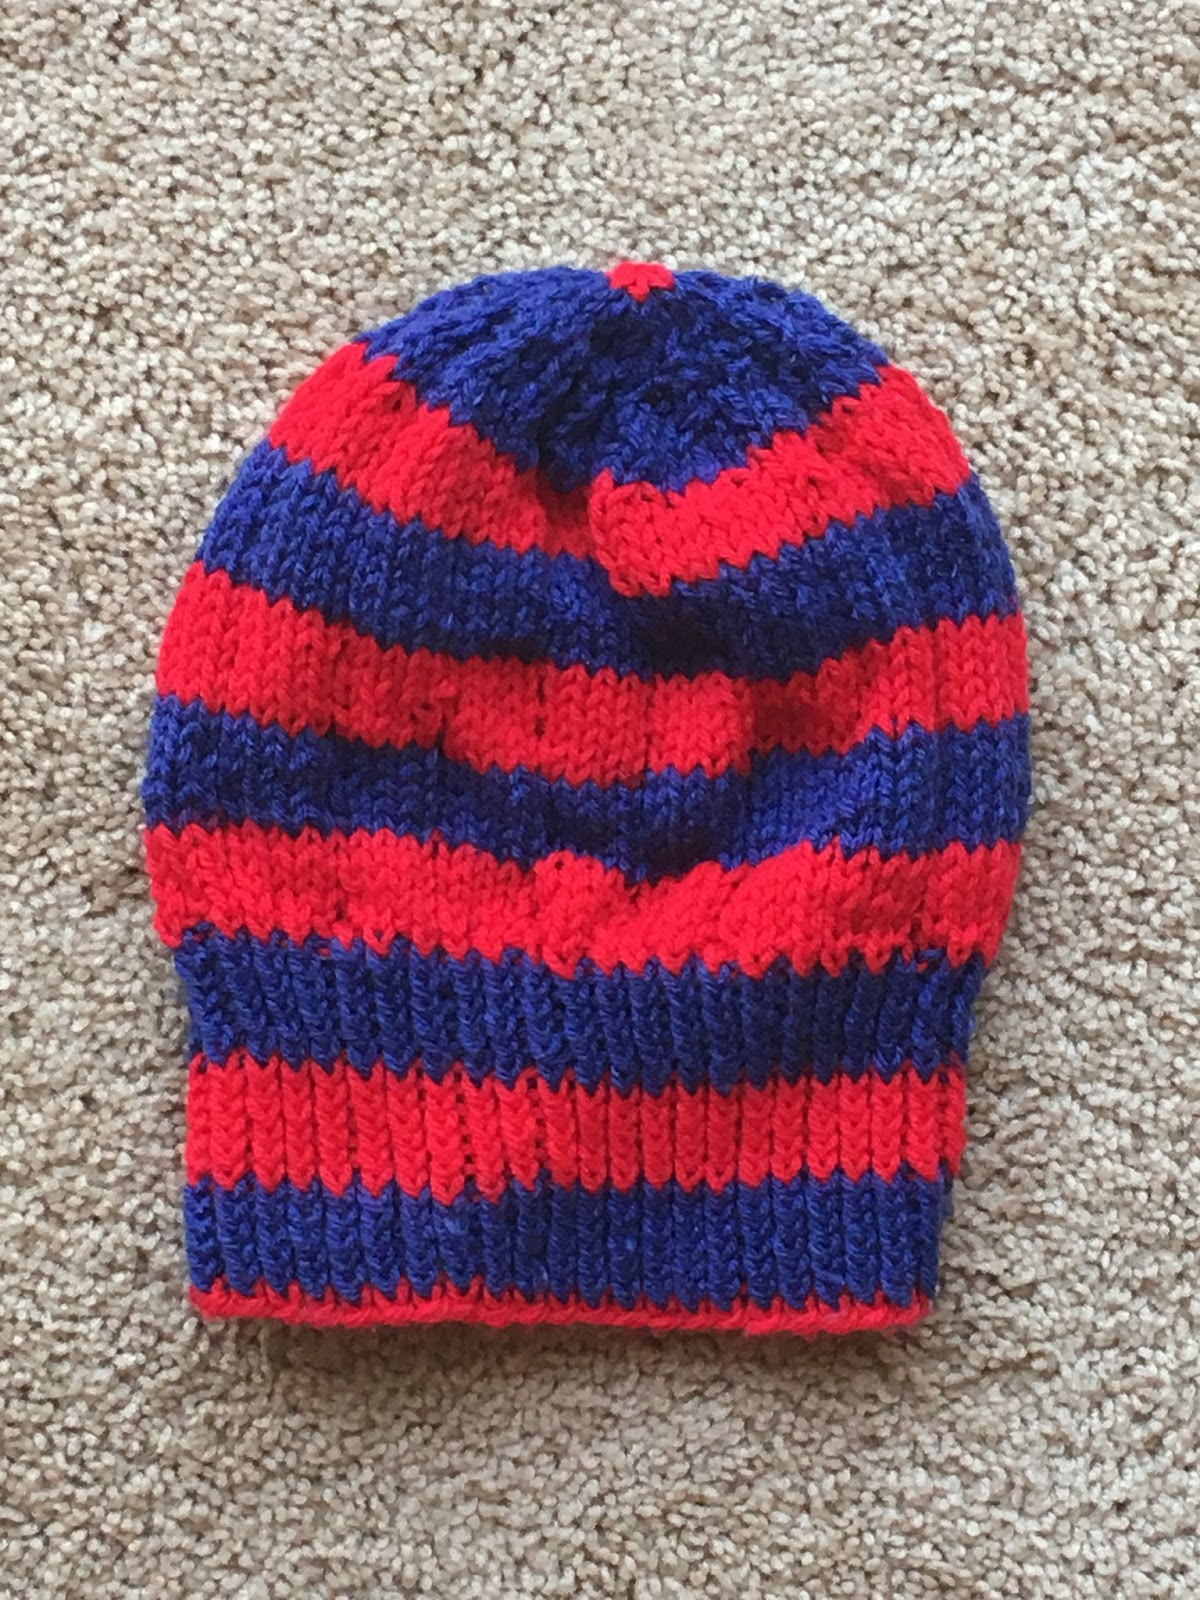 Knitting Patterns For Crazy Hats : Crazy Knitting Fool: FO: Giants Bankhead Hat